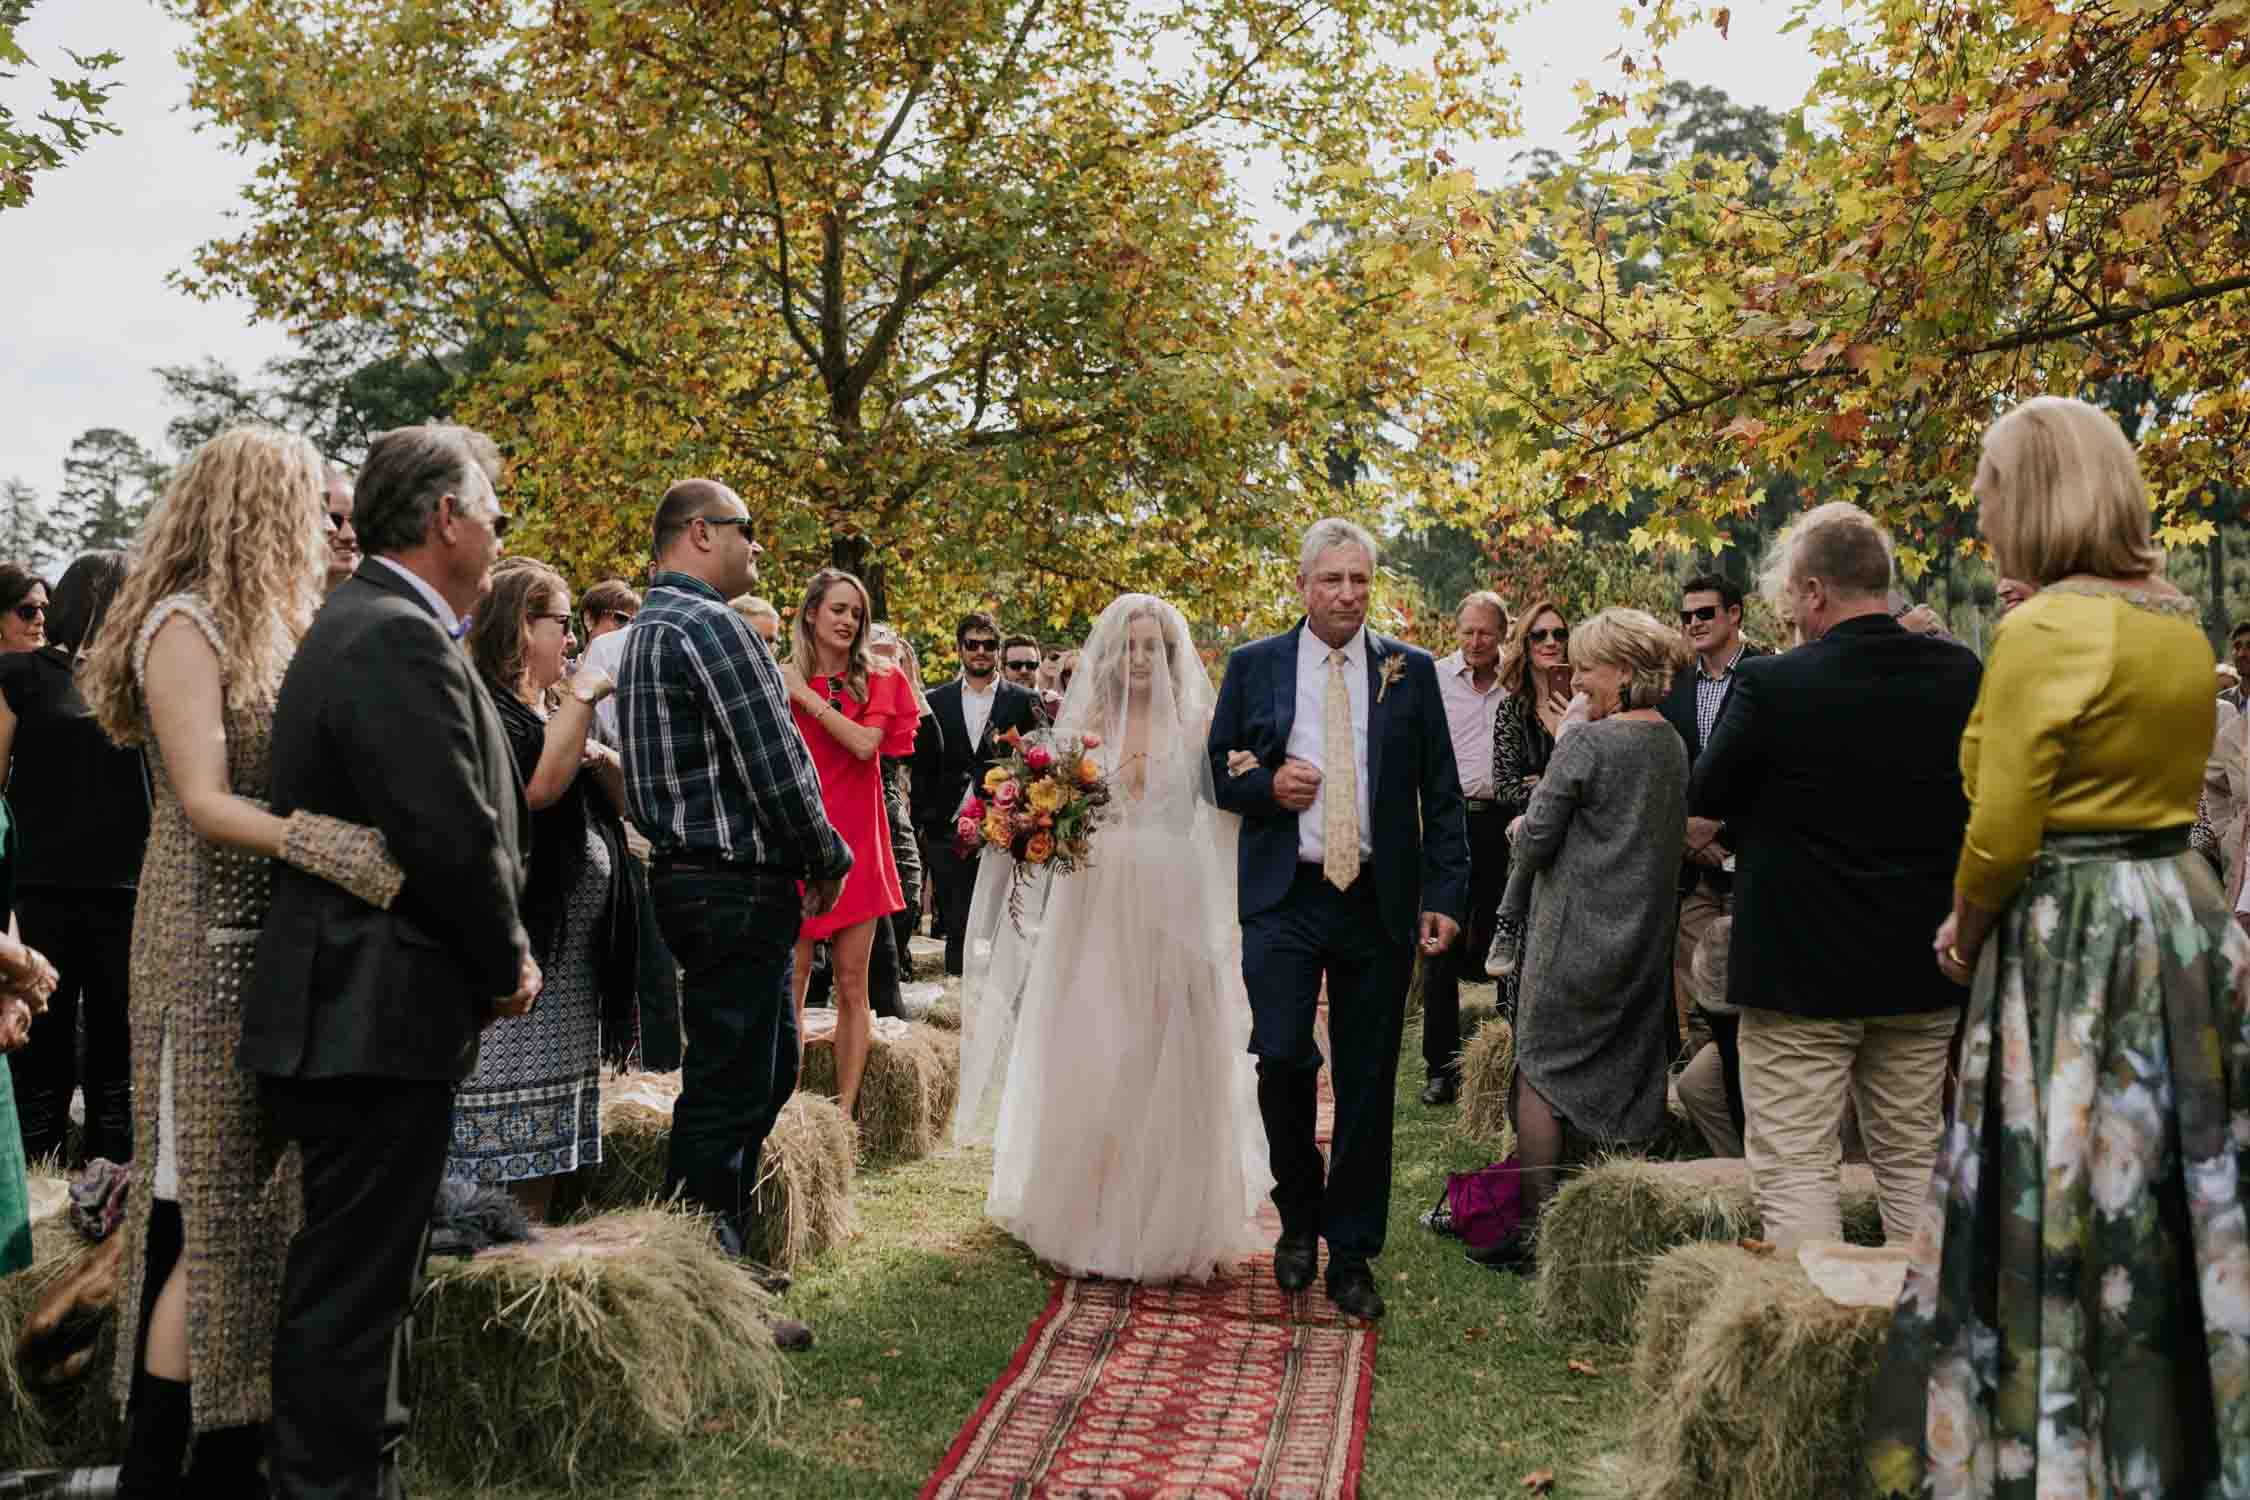 Bride wearing a low cut dress with beautiful and detailed beadwork with a skirt that is see through and cute shorts underneath almost like a jump suit underneath a wedding dress. She is holding a wedding bouquet of burnt orange pink and red flowers and roses with dried ferns and grass in it. Her dad is walking her down the aisle on a red Persian carpet under the Autumn trees in a garden and they are very emotional.